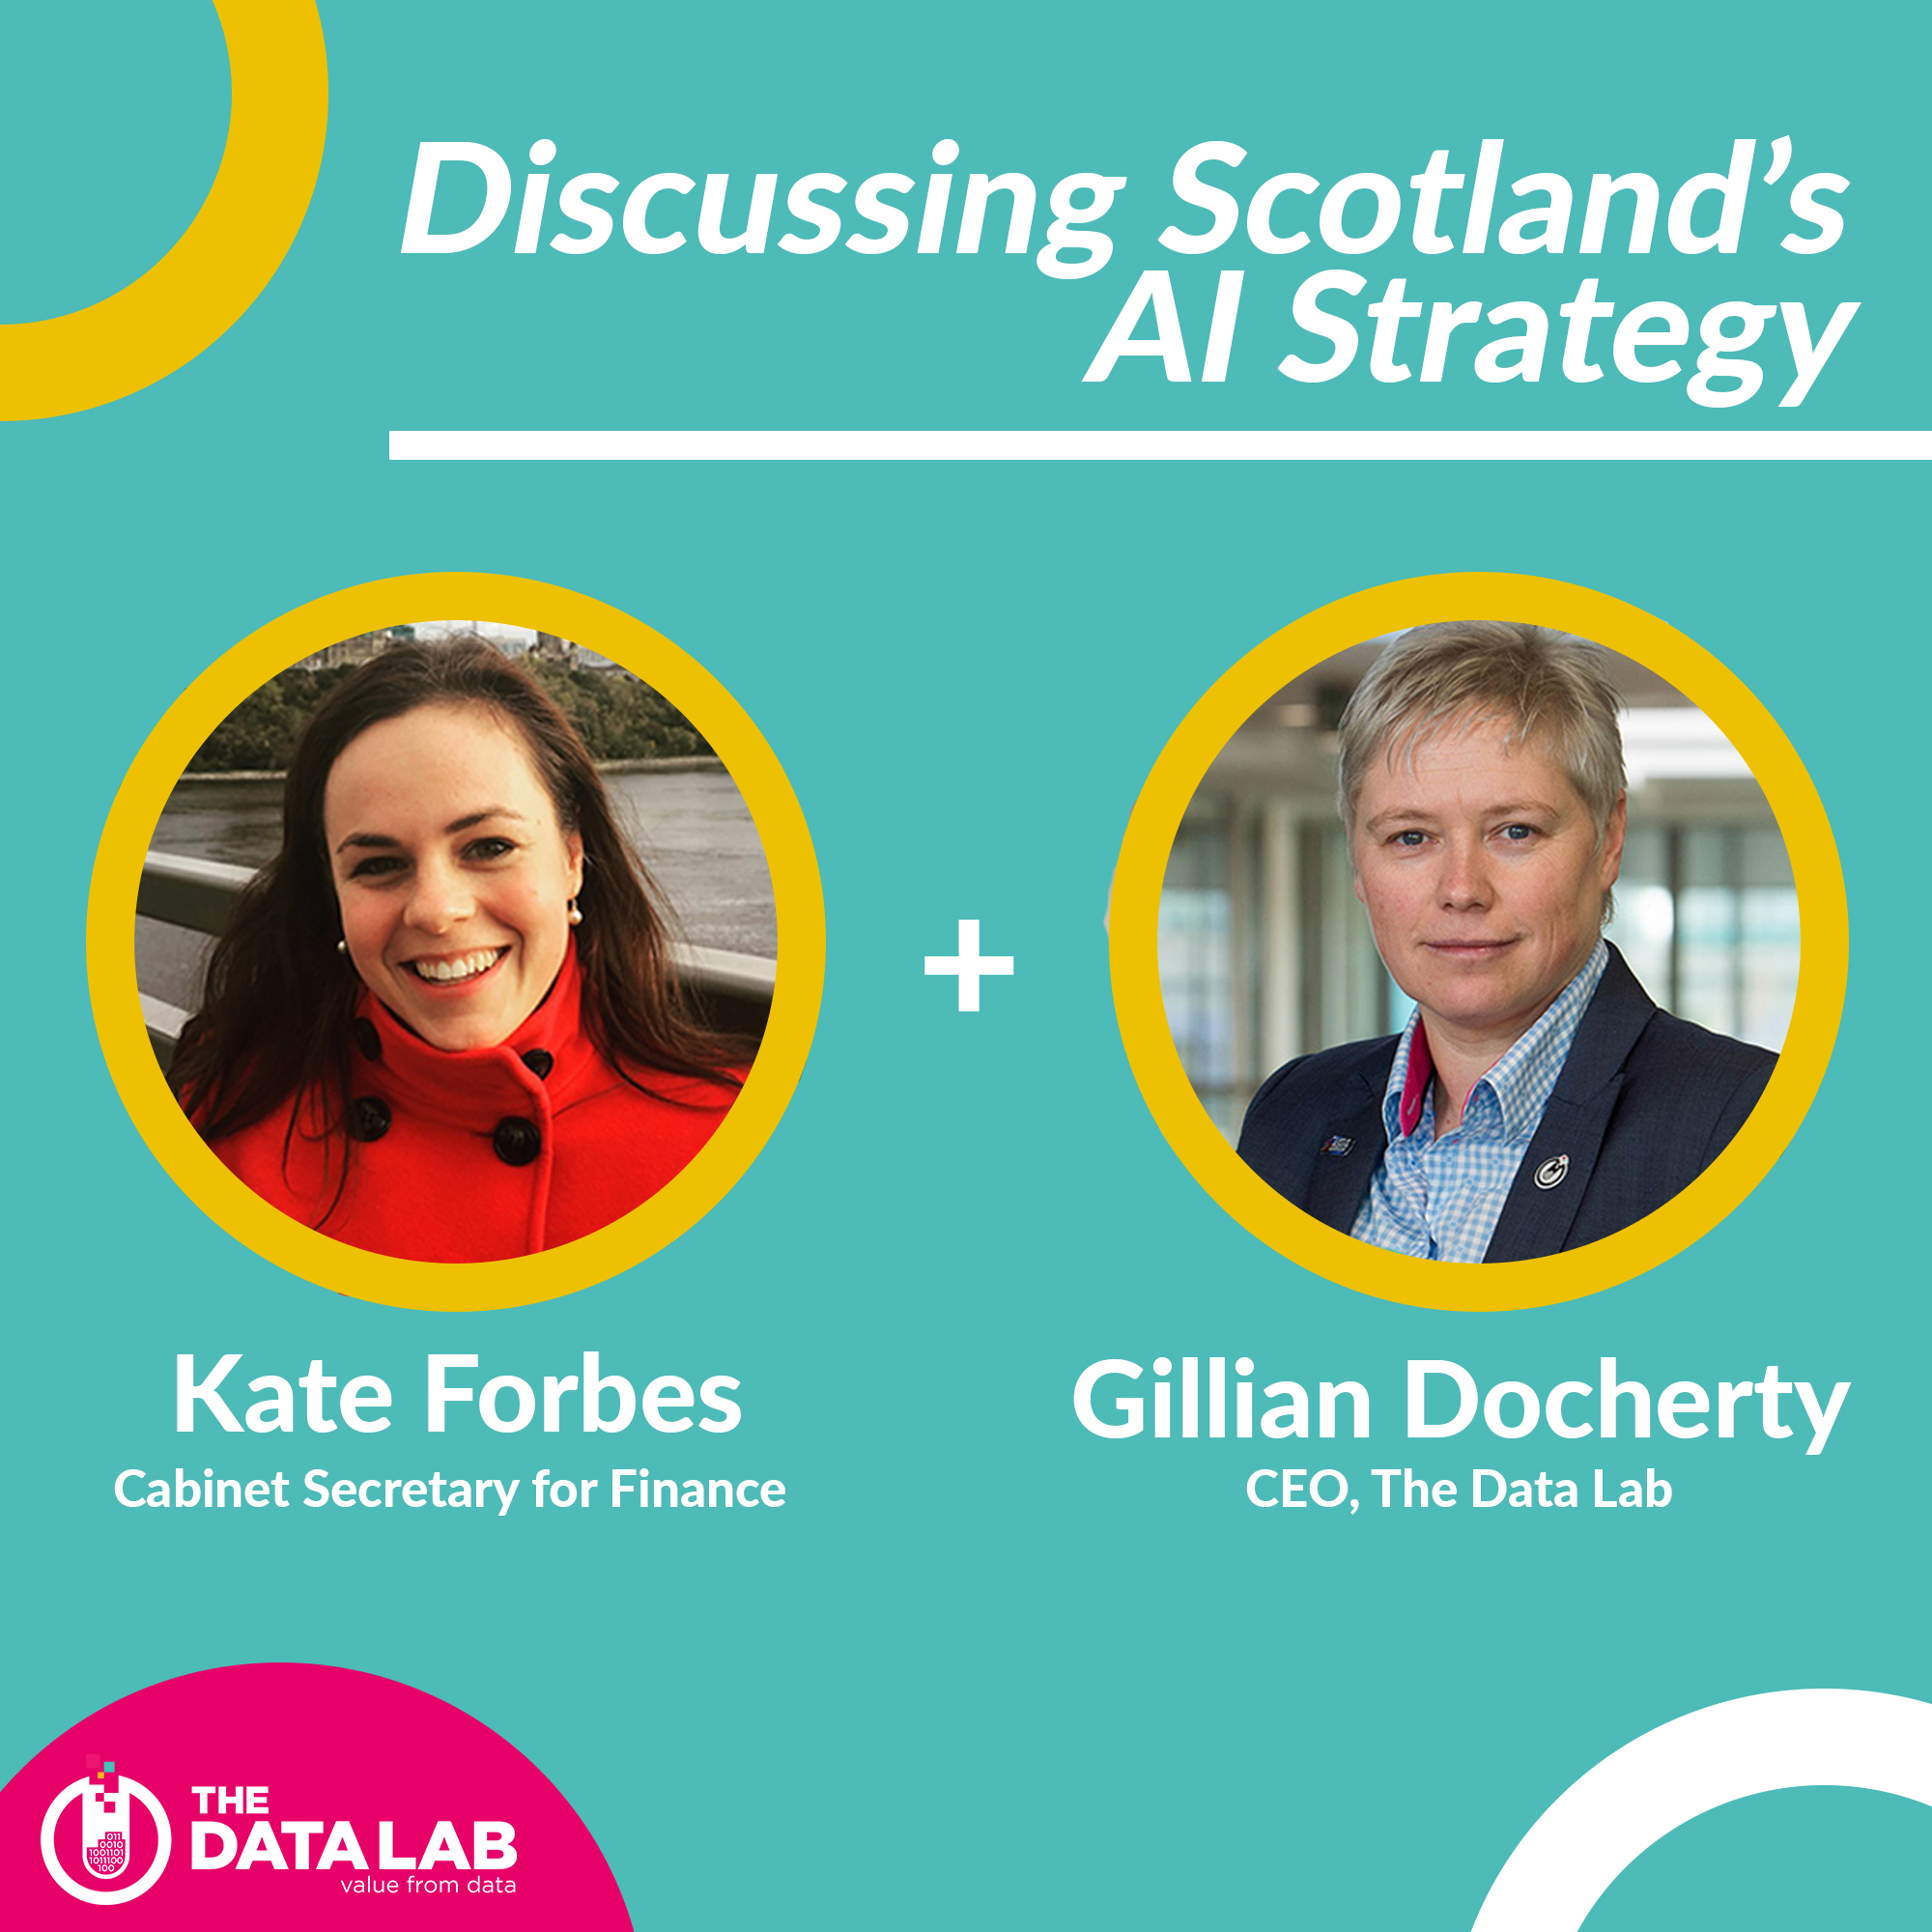 Gillian Docherty and Kate Forbes discussing Scotland's AI Strategy